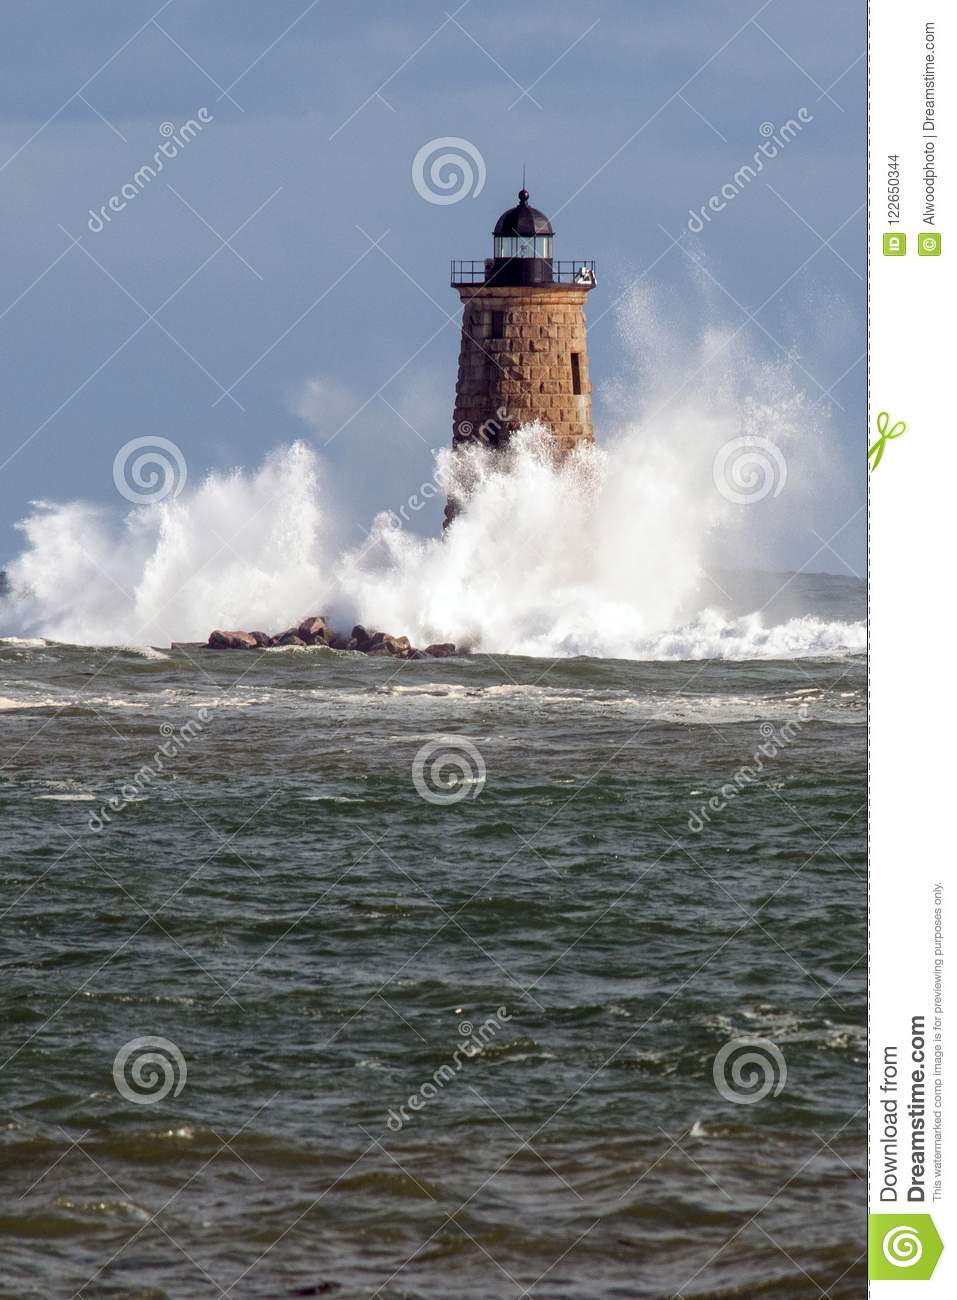 Rare High Tide Causes Giant Waves to Break Around Stone Lighthouse